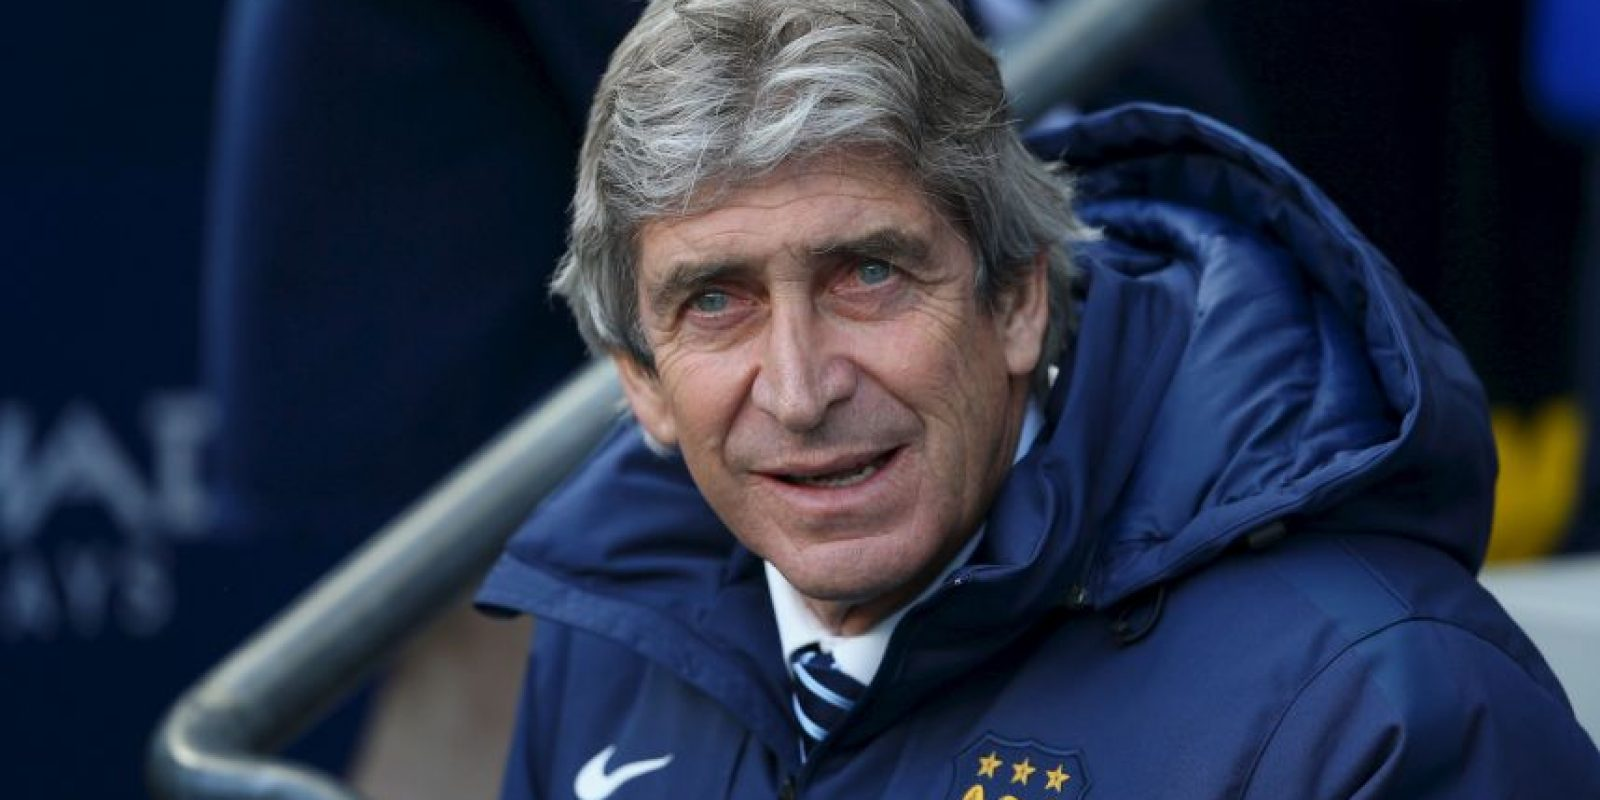 DT: Manuel Pellegrini (Manchester City/Chile) Foto: Getty Images